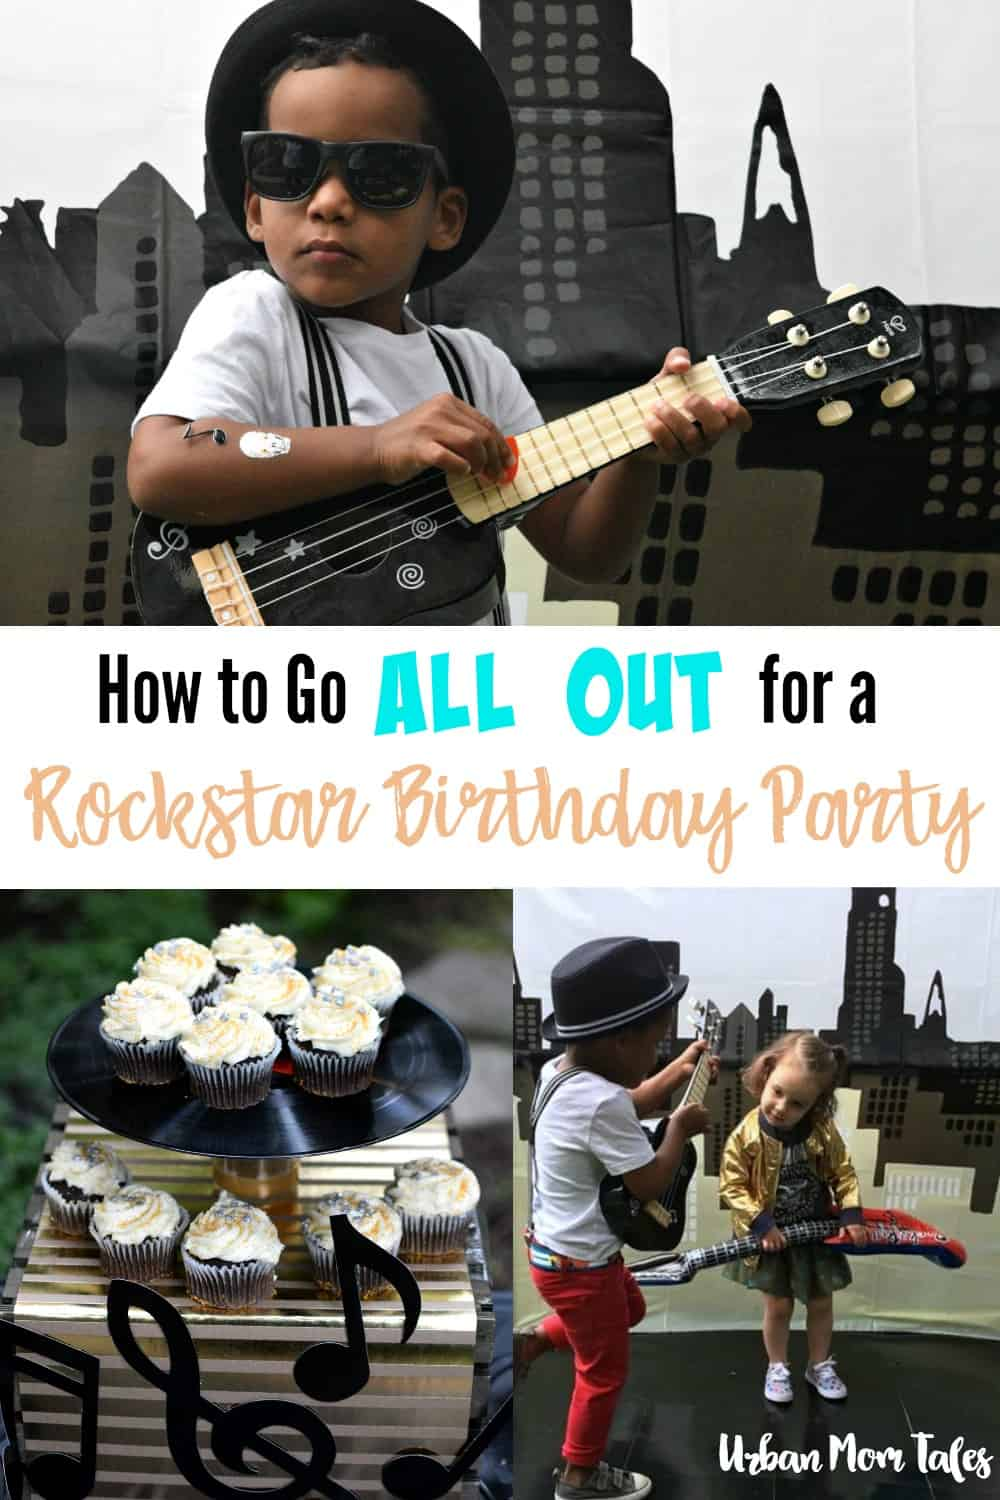 How to Go All Out for a Rockstar Birthday Party